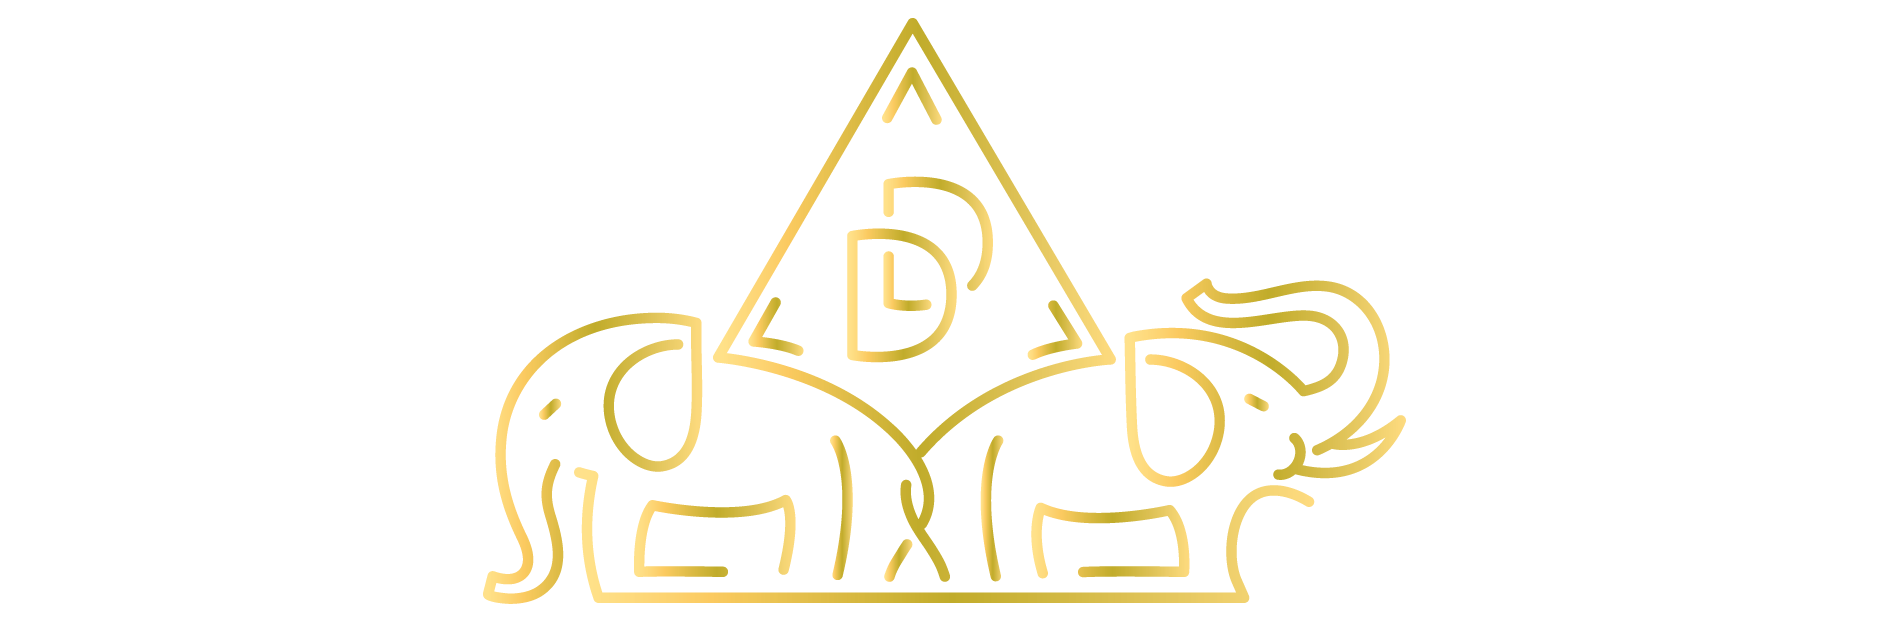 Devs Does logo of two golden elephants with DD balanced on their backs